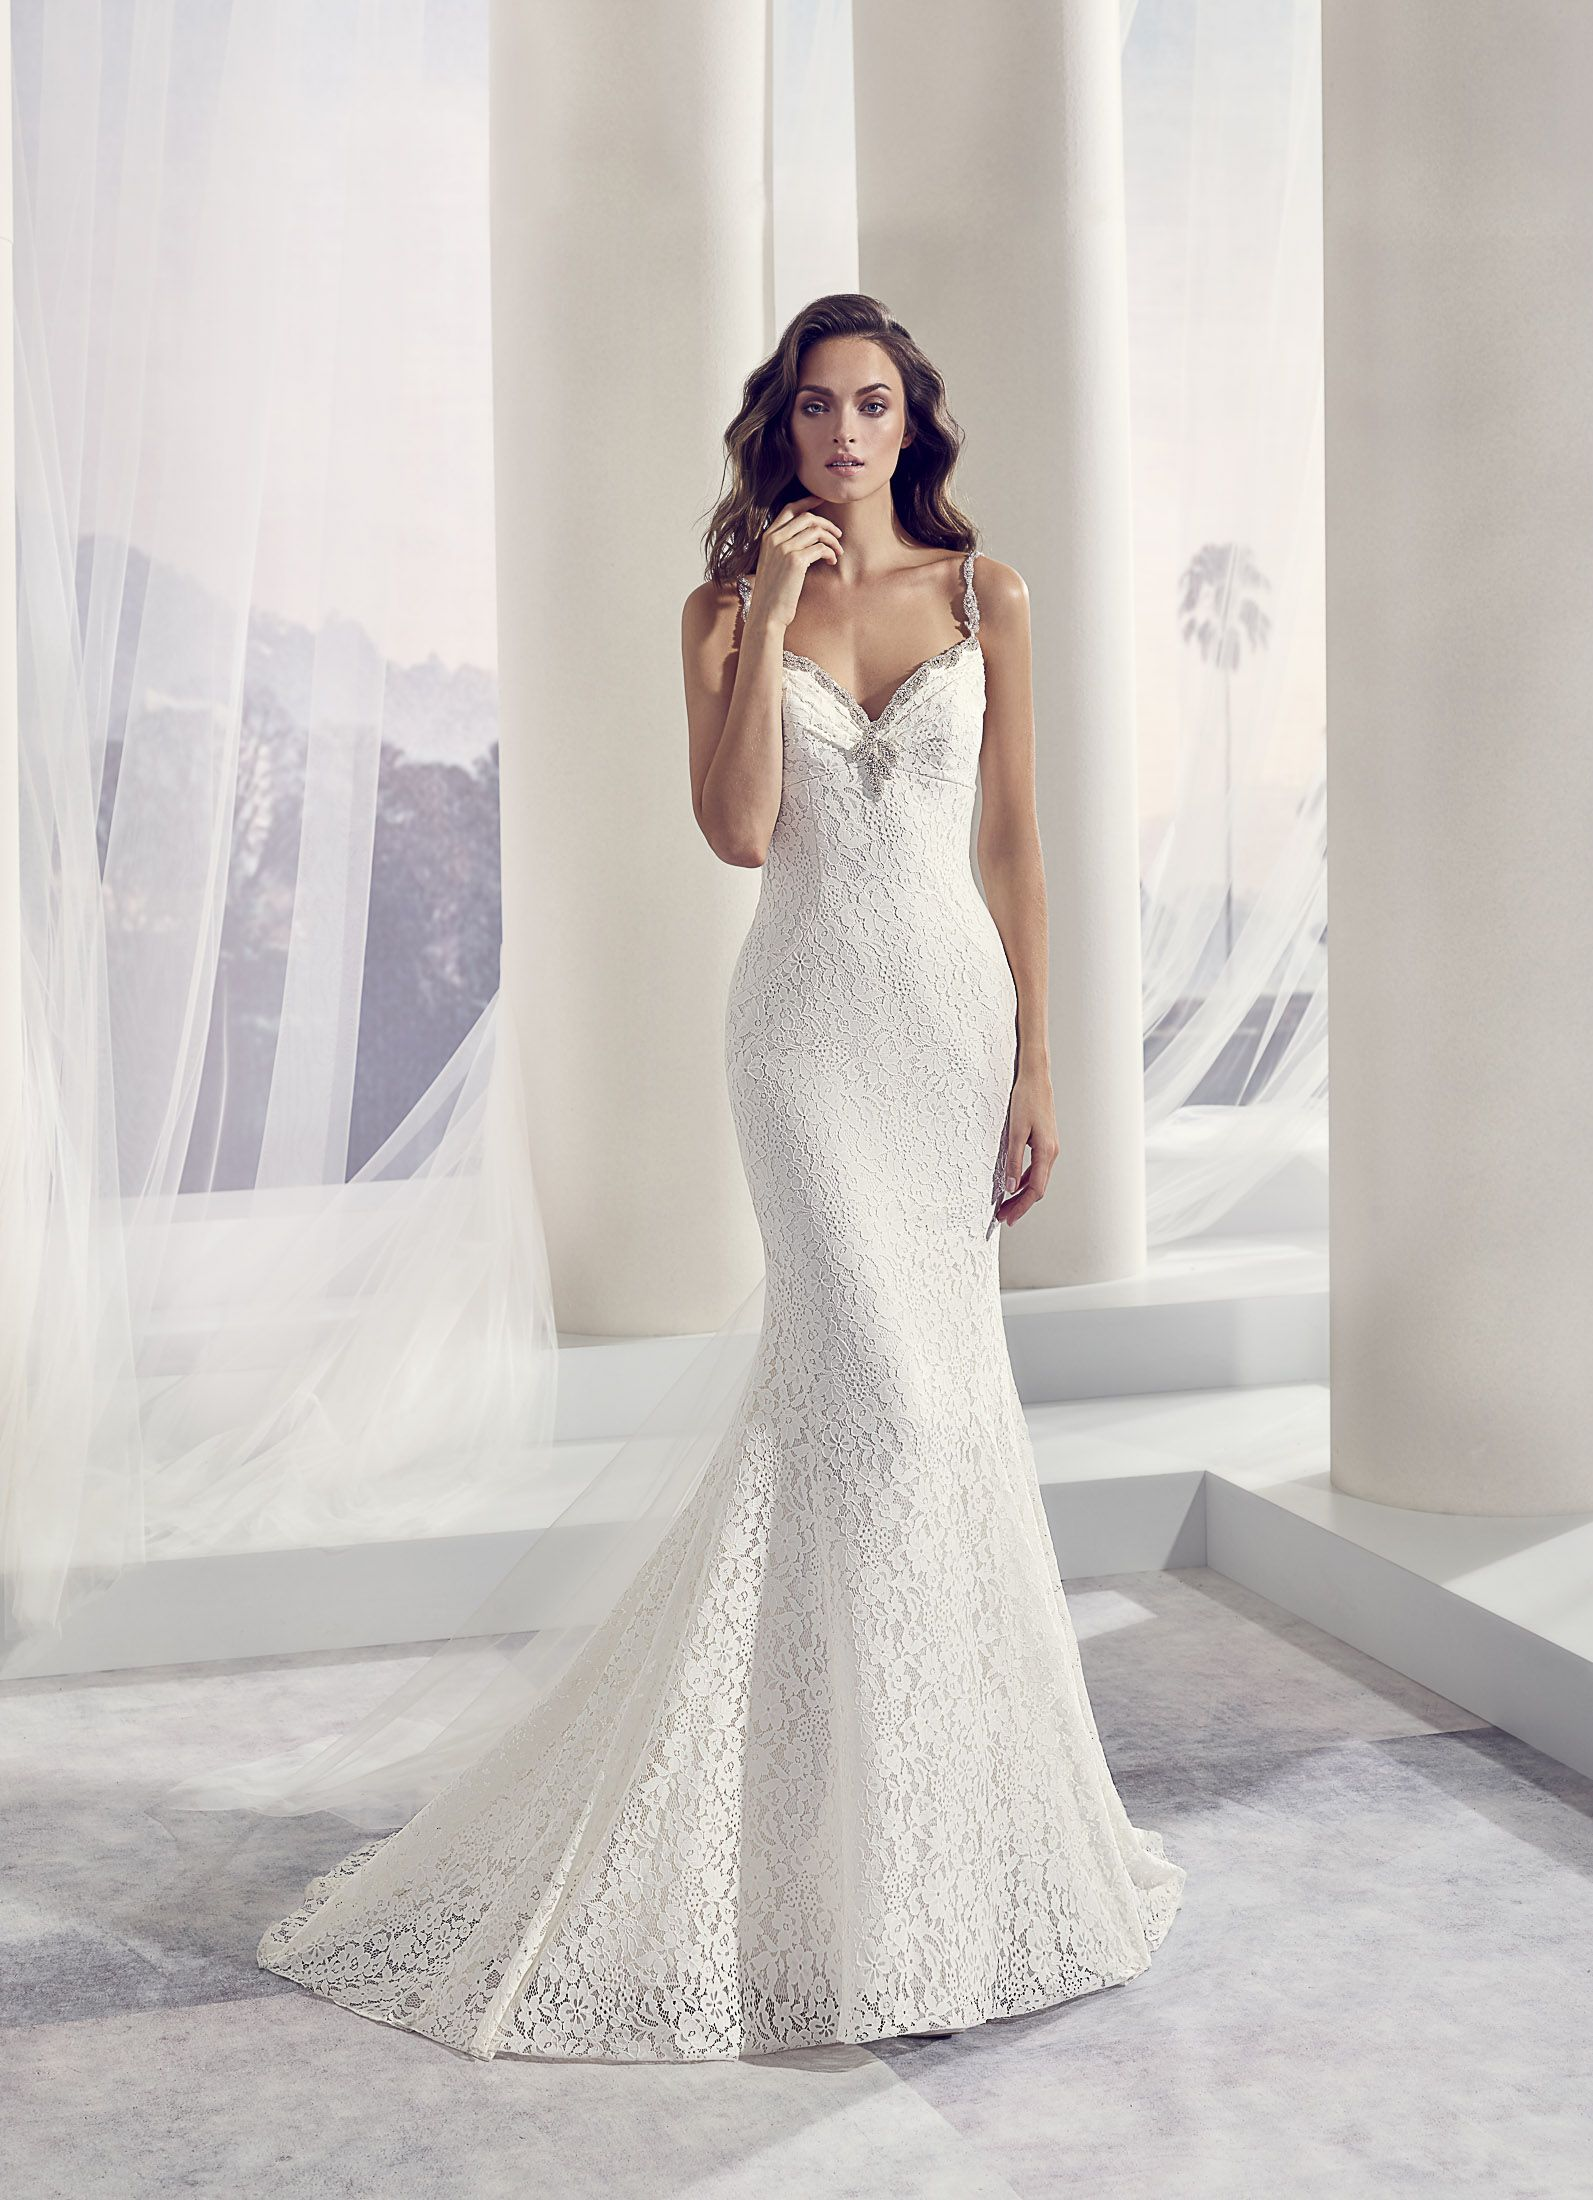 f2879ca5f82 Le Papillon by Modeca style Trophy - www.modeca.com Lurelly Bridal